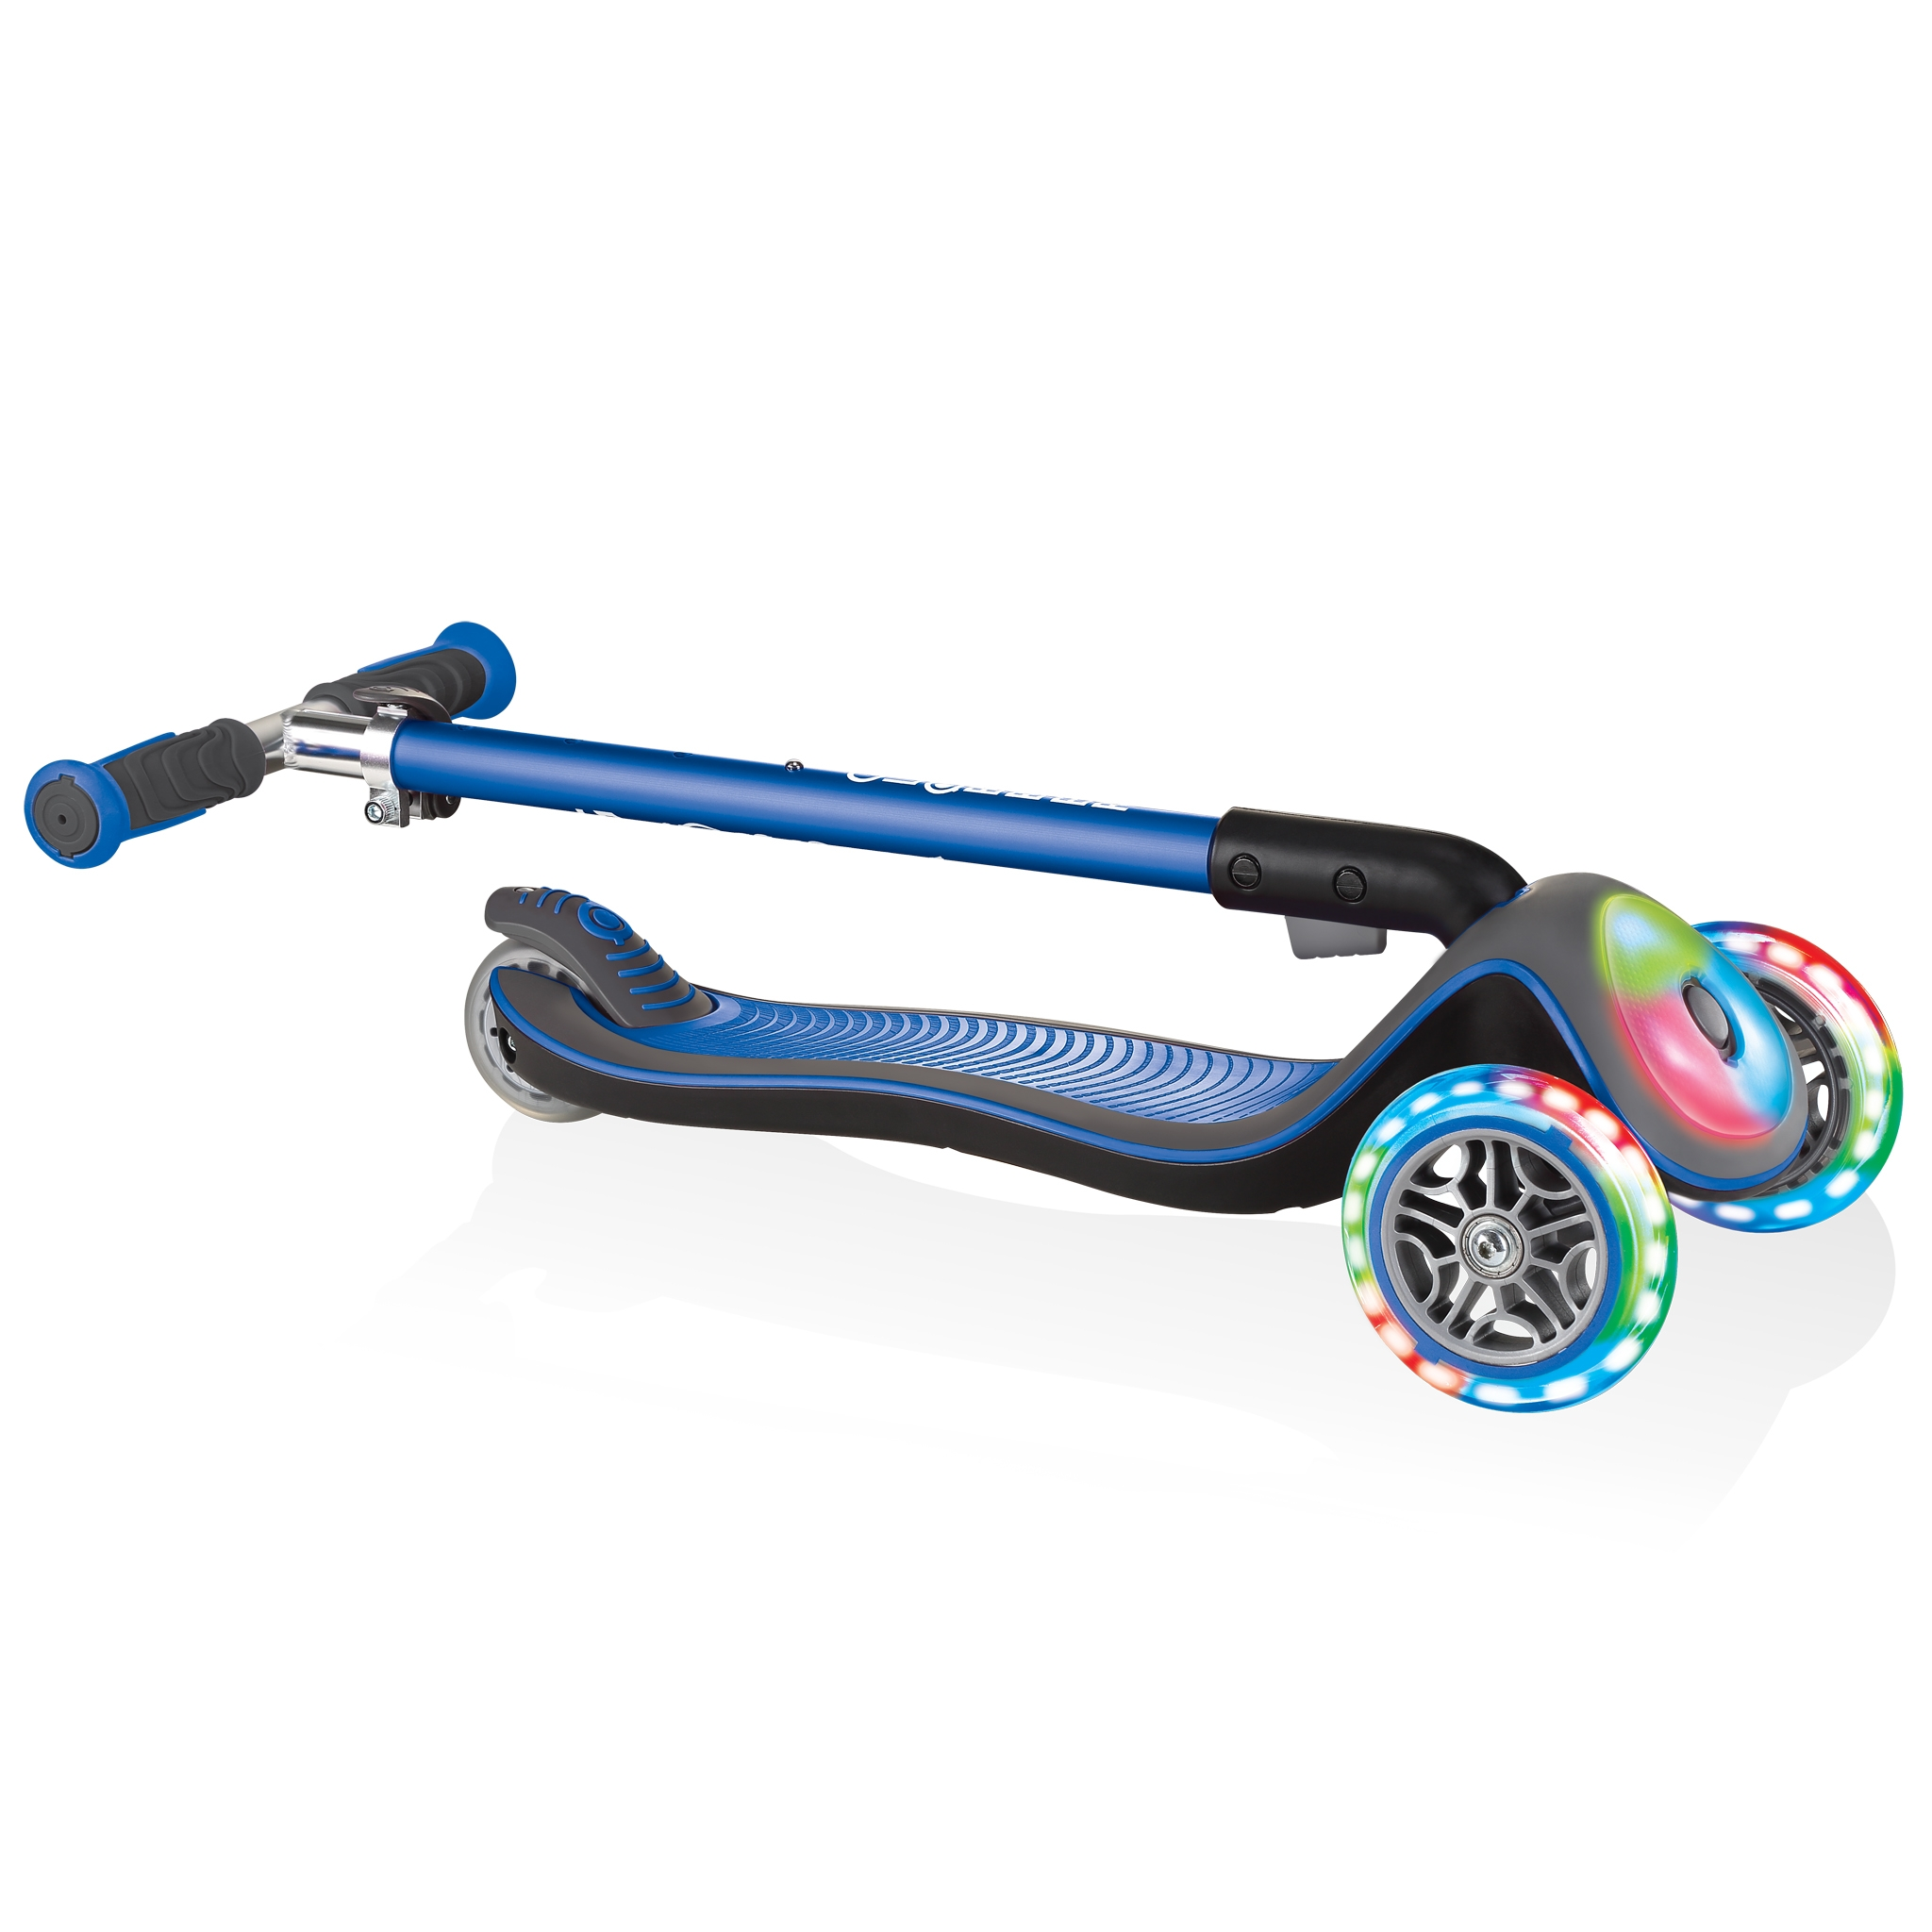 Globber-ELITE-DELUXE-FLASH-LIGHTS-3-wheel-foldable-scooter-for-kids-with-light-up-deck-module-and-wheels-navy-blue 4